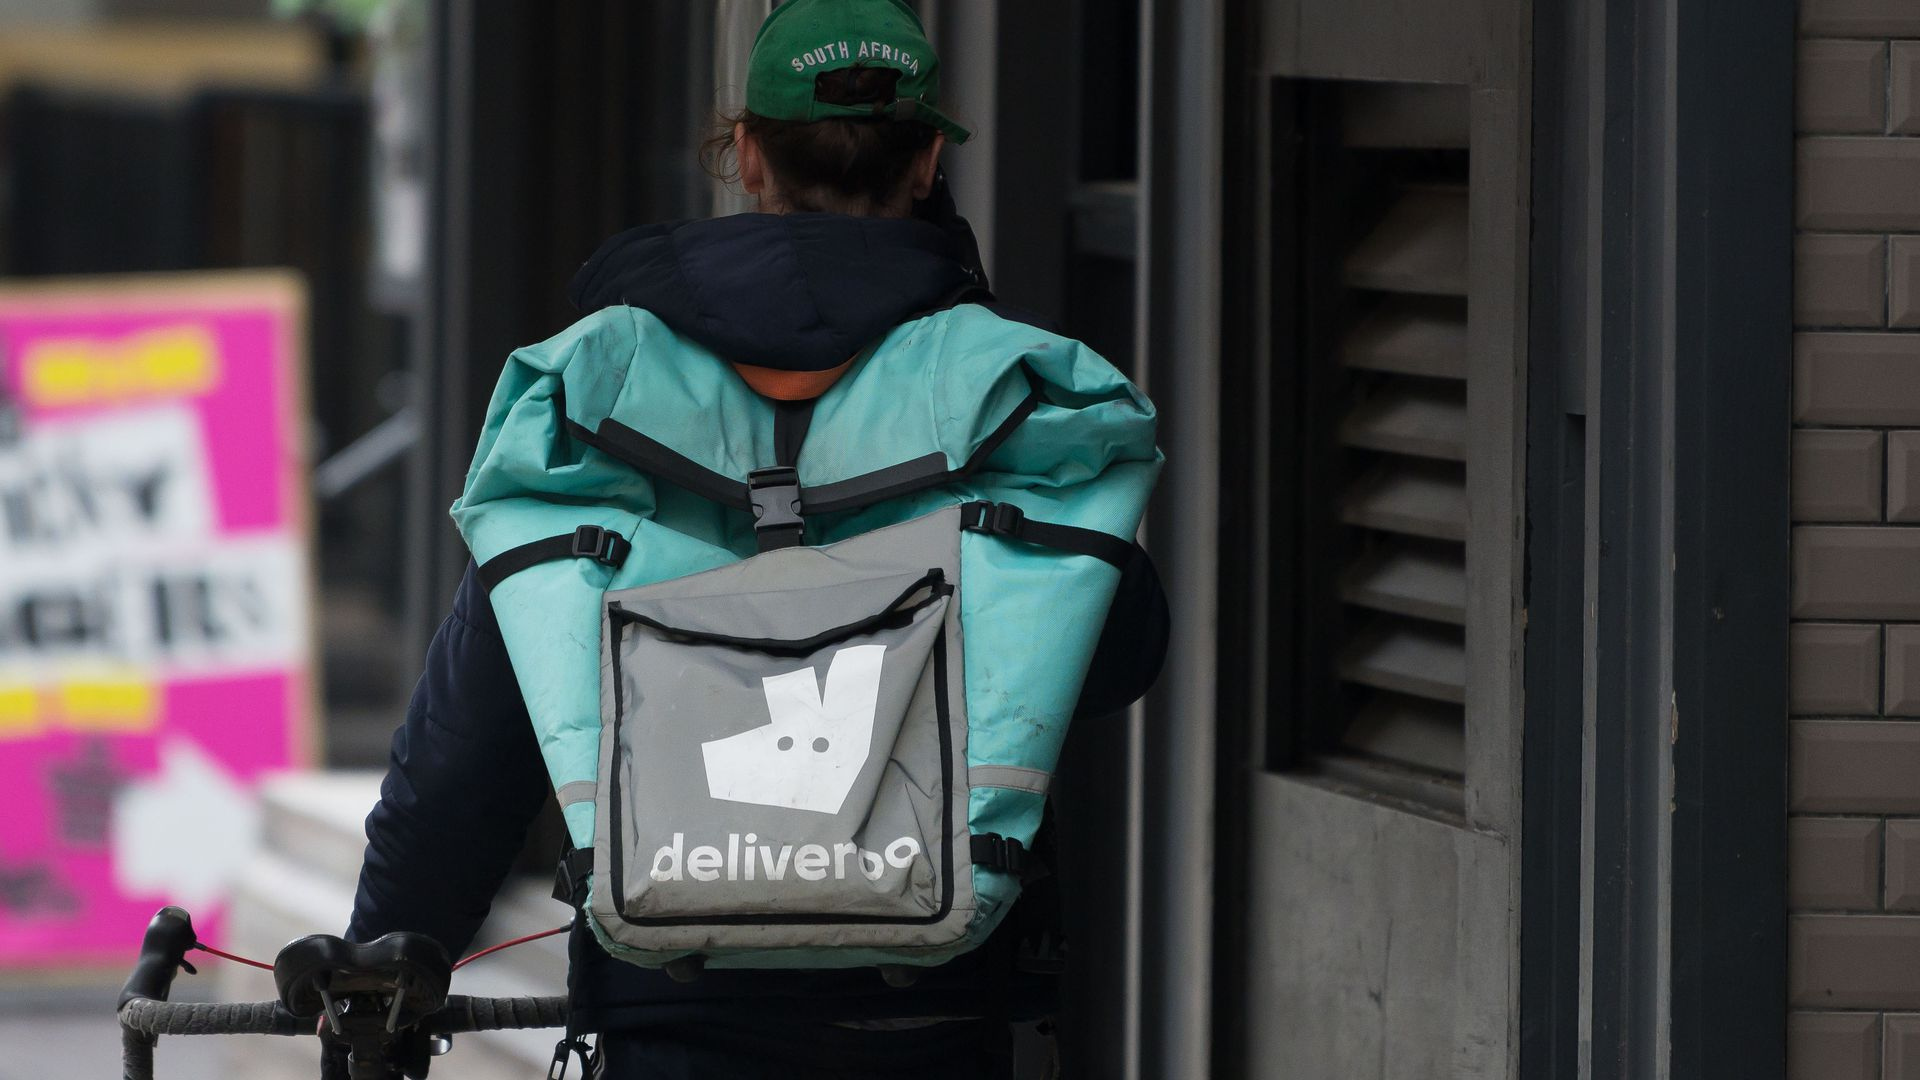 In this image, a Deliveroo deliveryperson walks down the street with a package on their back and guiding a bicycle.